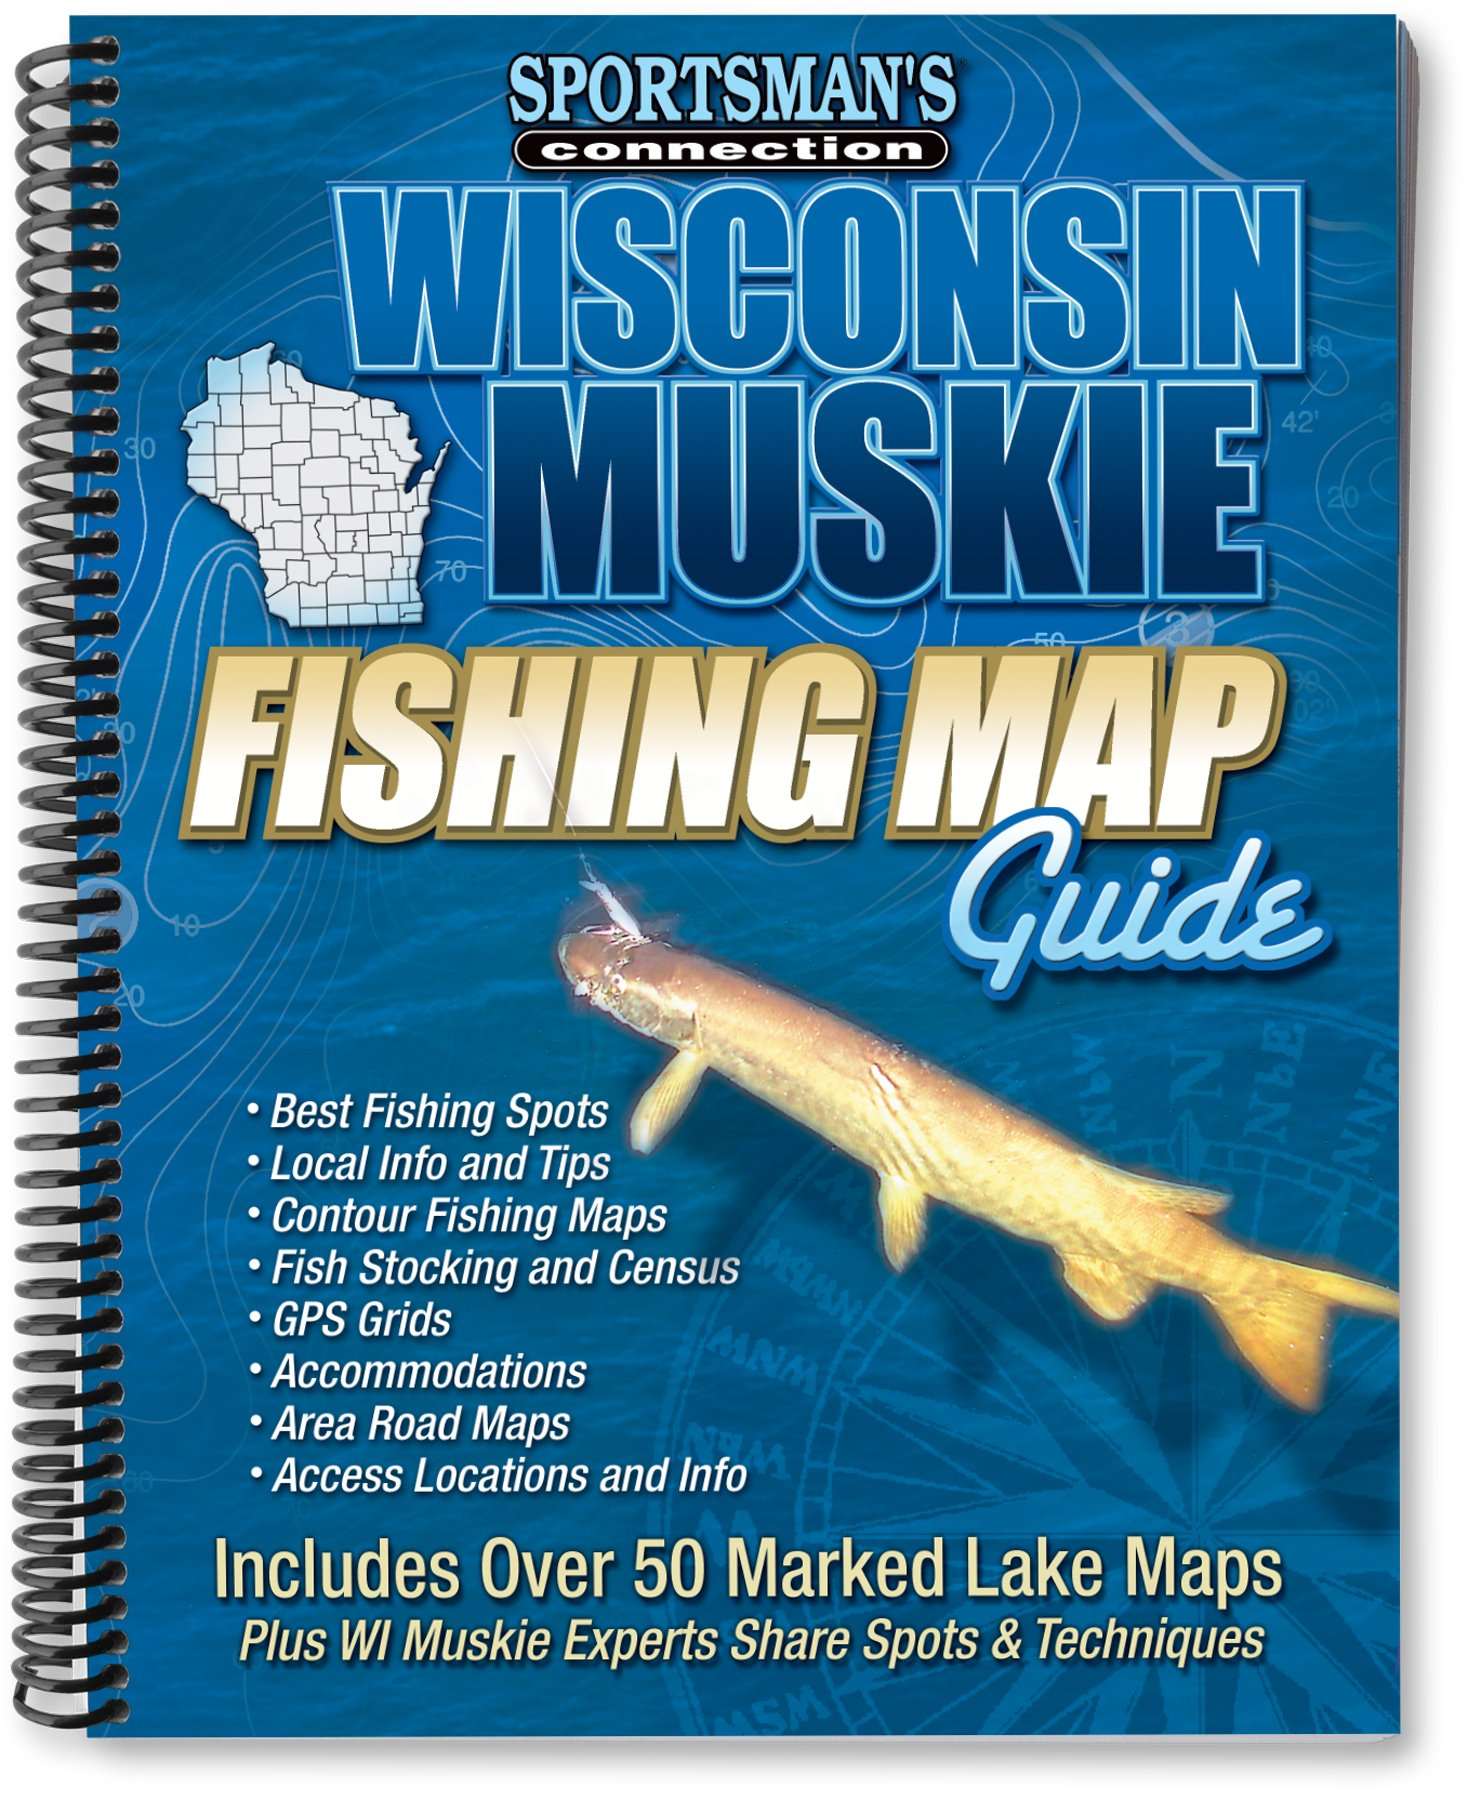 Wisconsin muskie fishing map guide fishing maps from sportsmans wisconsin muskie fishing map guide fishing maps from sportsmans connection sportsmans connection jim billig 9781885010377 amazon books geenschuldenfo Image collections